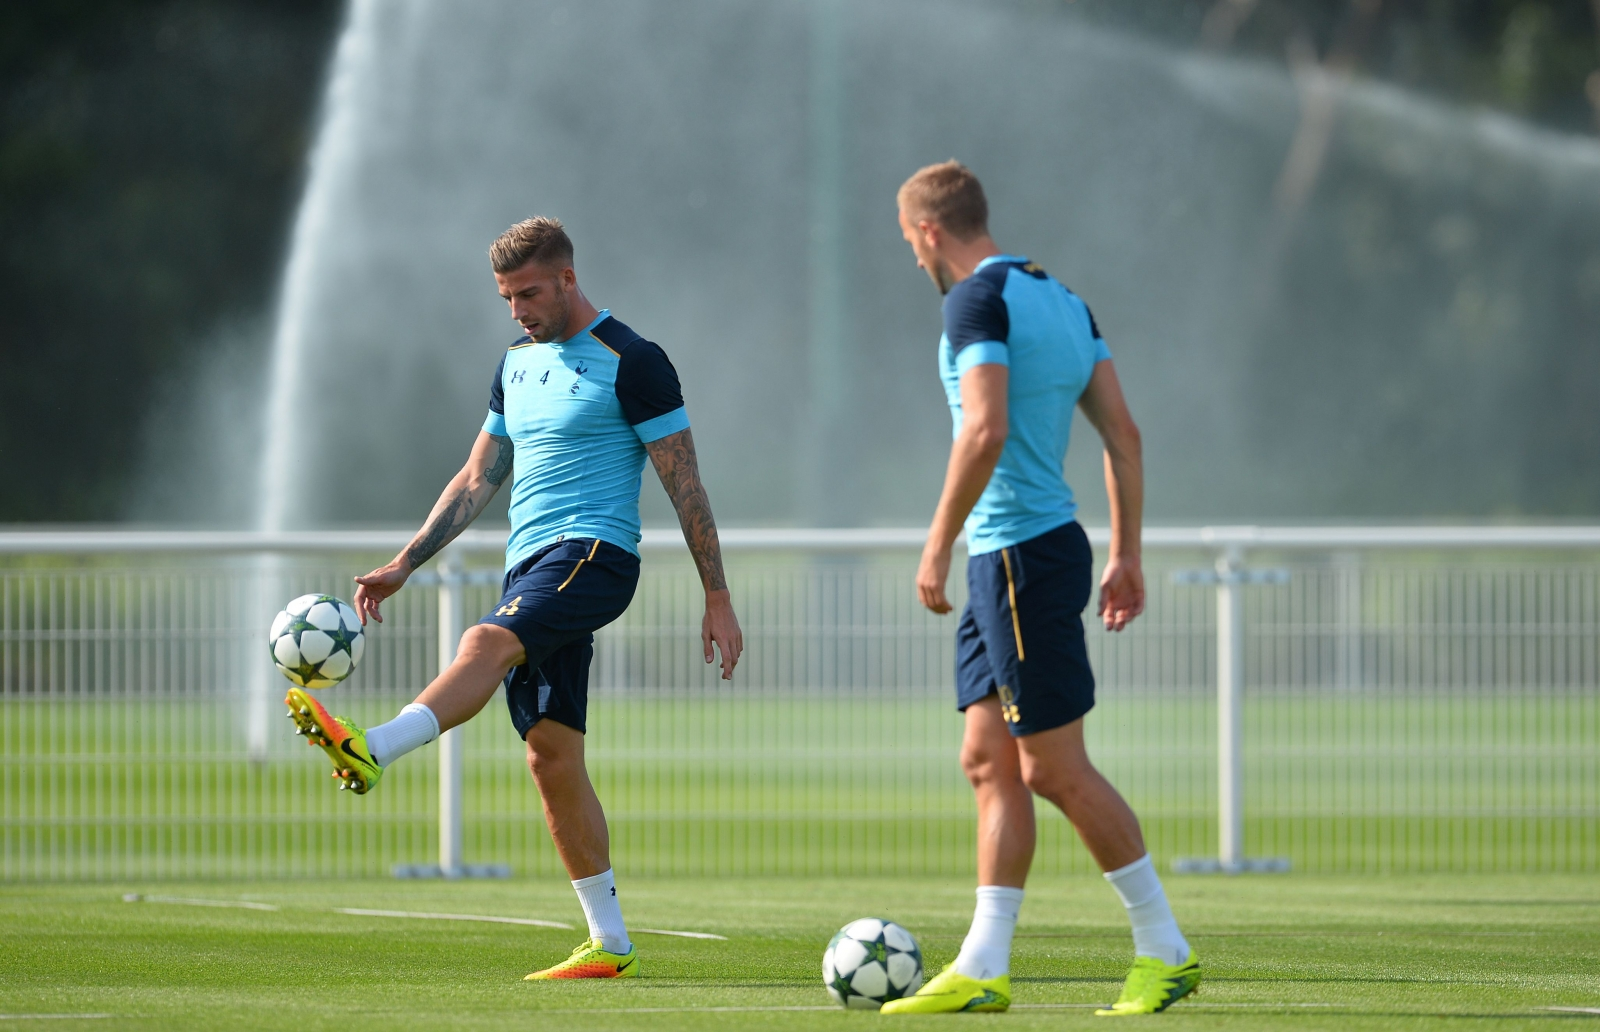 Kane and Alderweireld